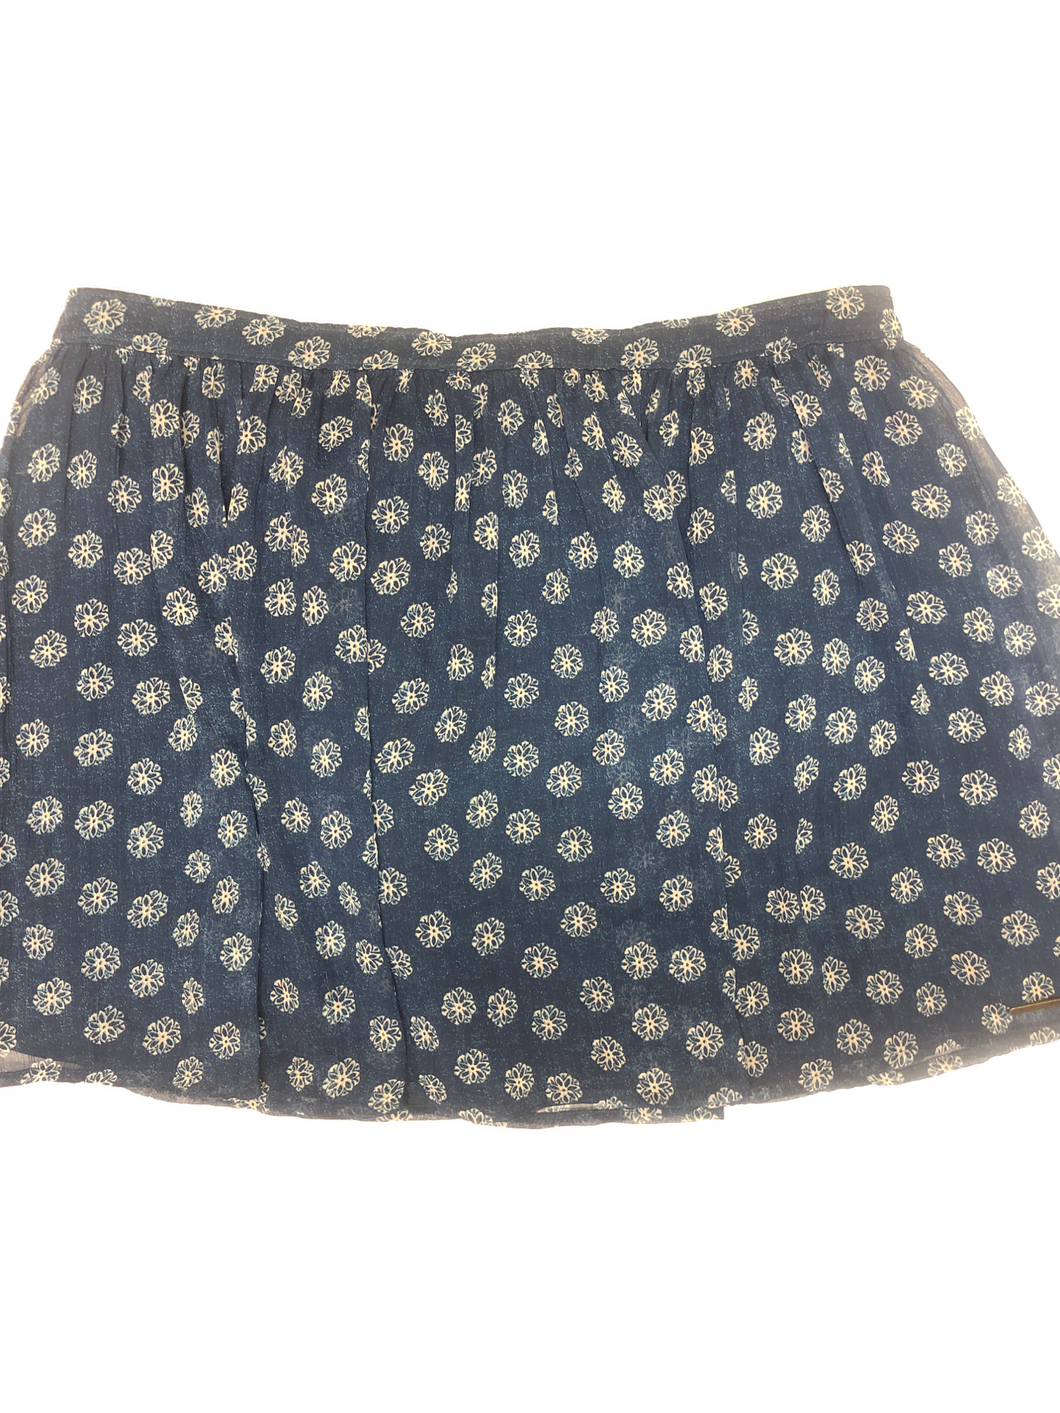 Abercrombie & Fitch Short Skirt Size Medium